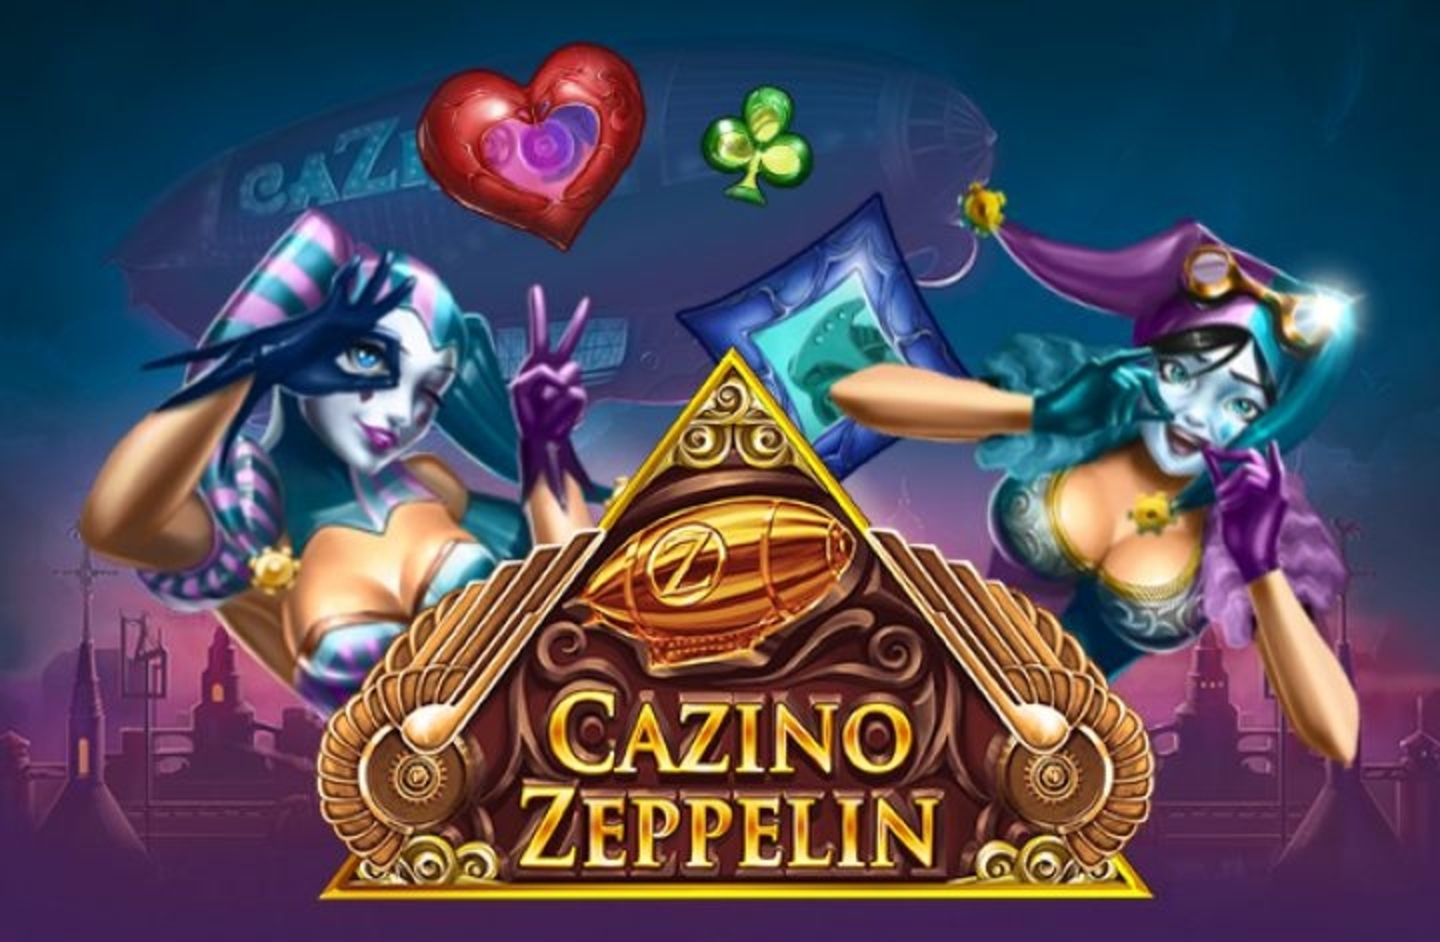 Cazino Zeppelin Online Slot Demo Game by Yggdrasil Gaming